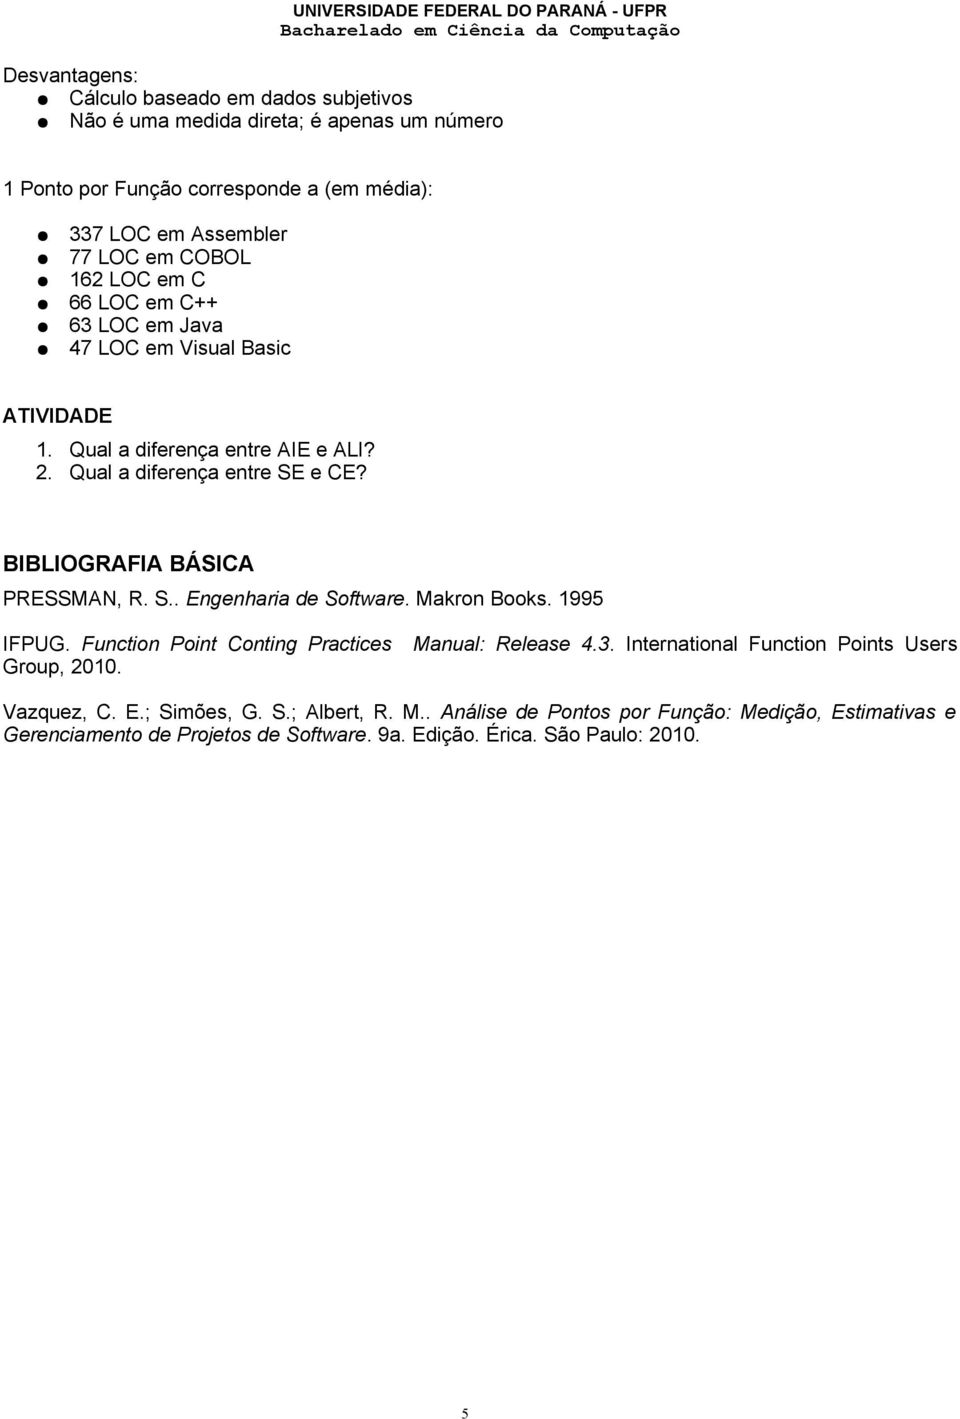 BIBLIOGRAFIA BÁSICA PRESSMAN, R. S.. Engenharia de Software. Makron Books. 1995 IFPUG. Function Point Conting Practices Manual: Release 4.3.